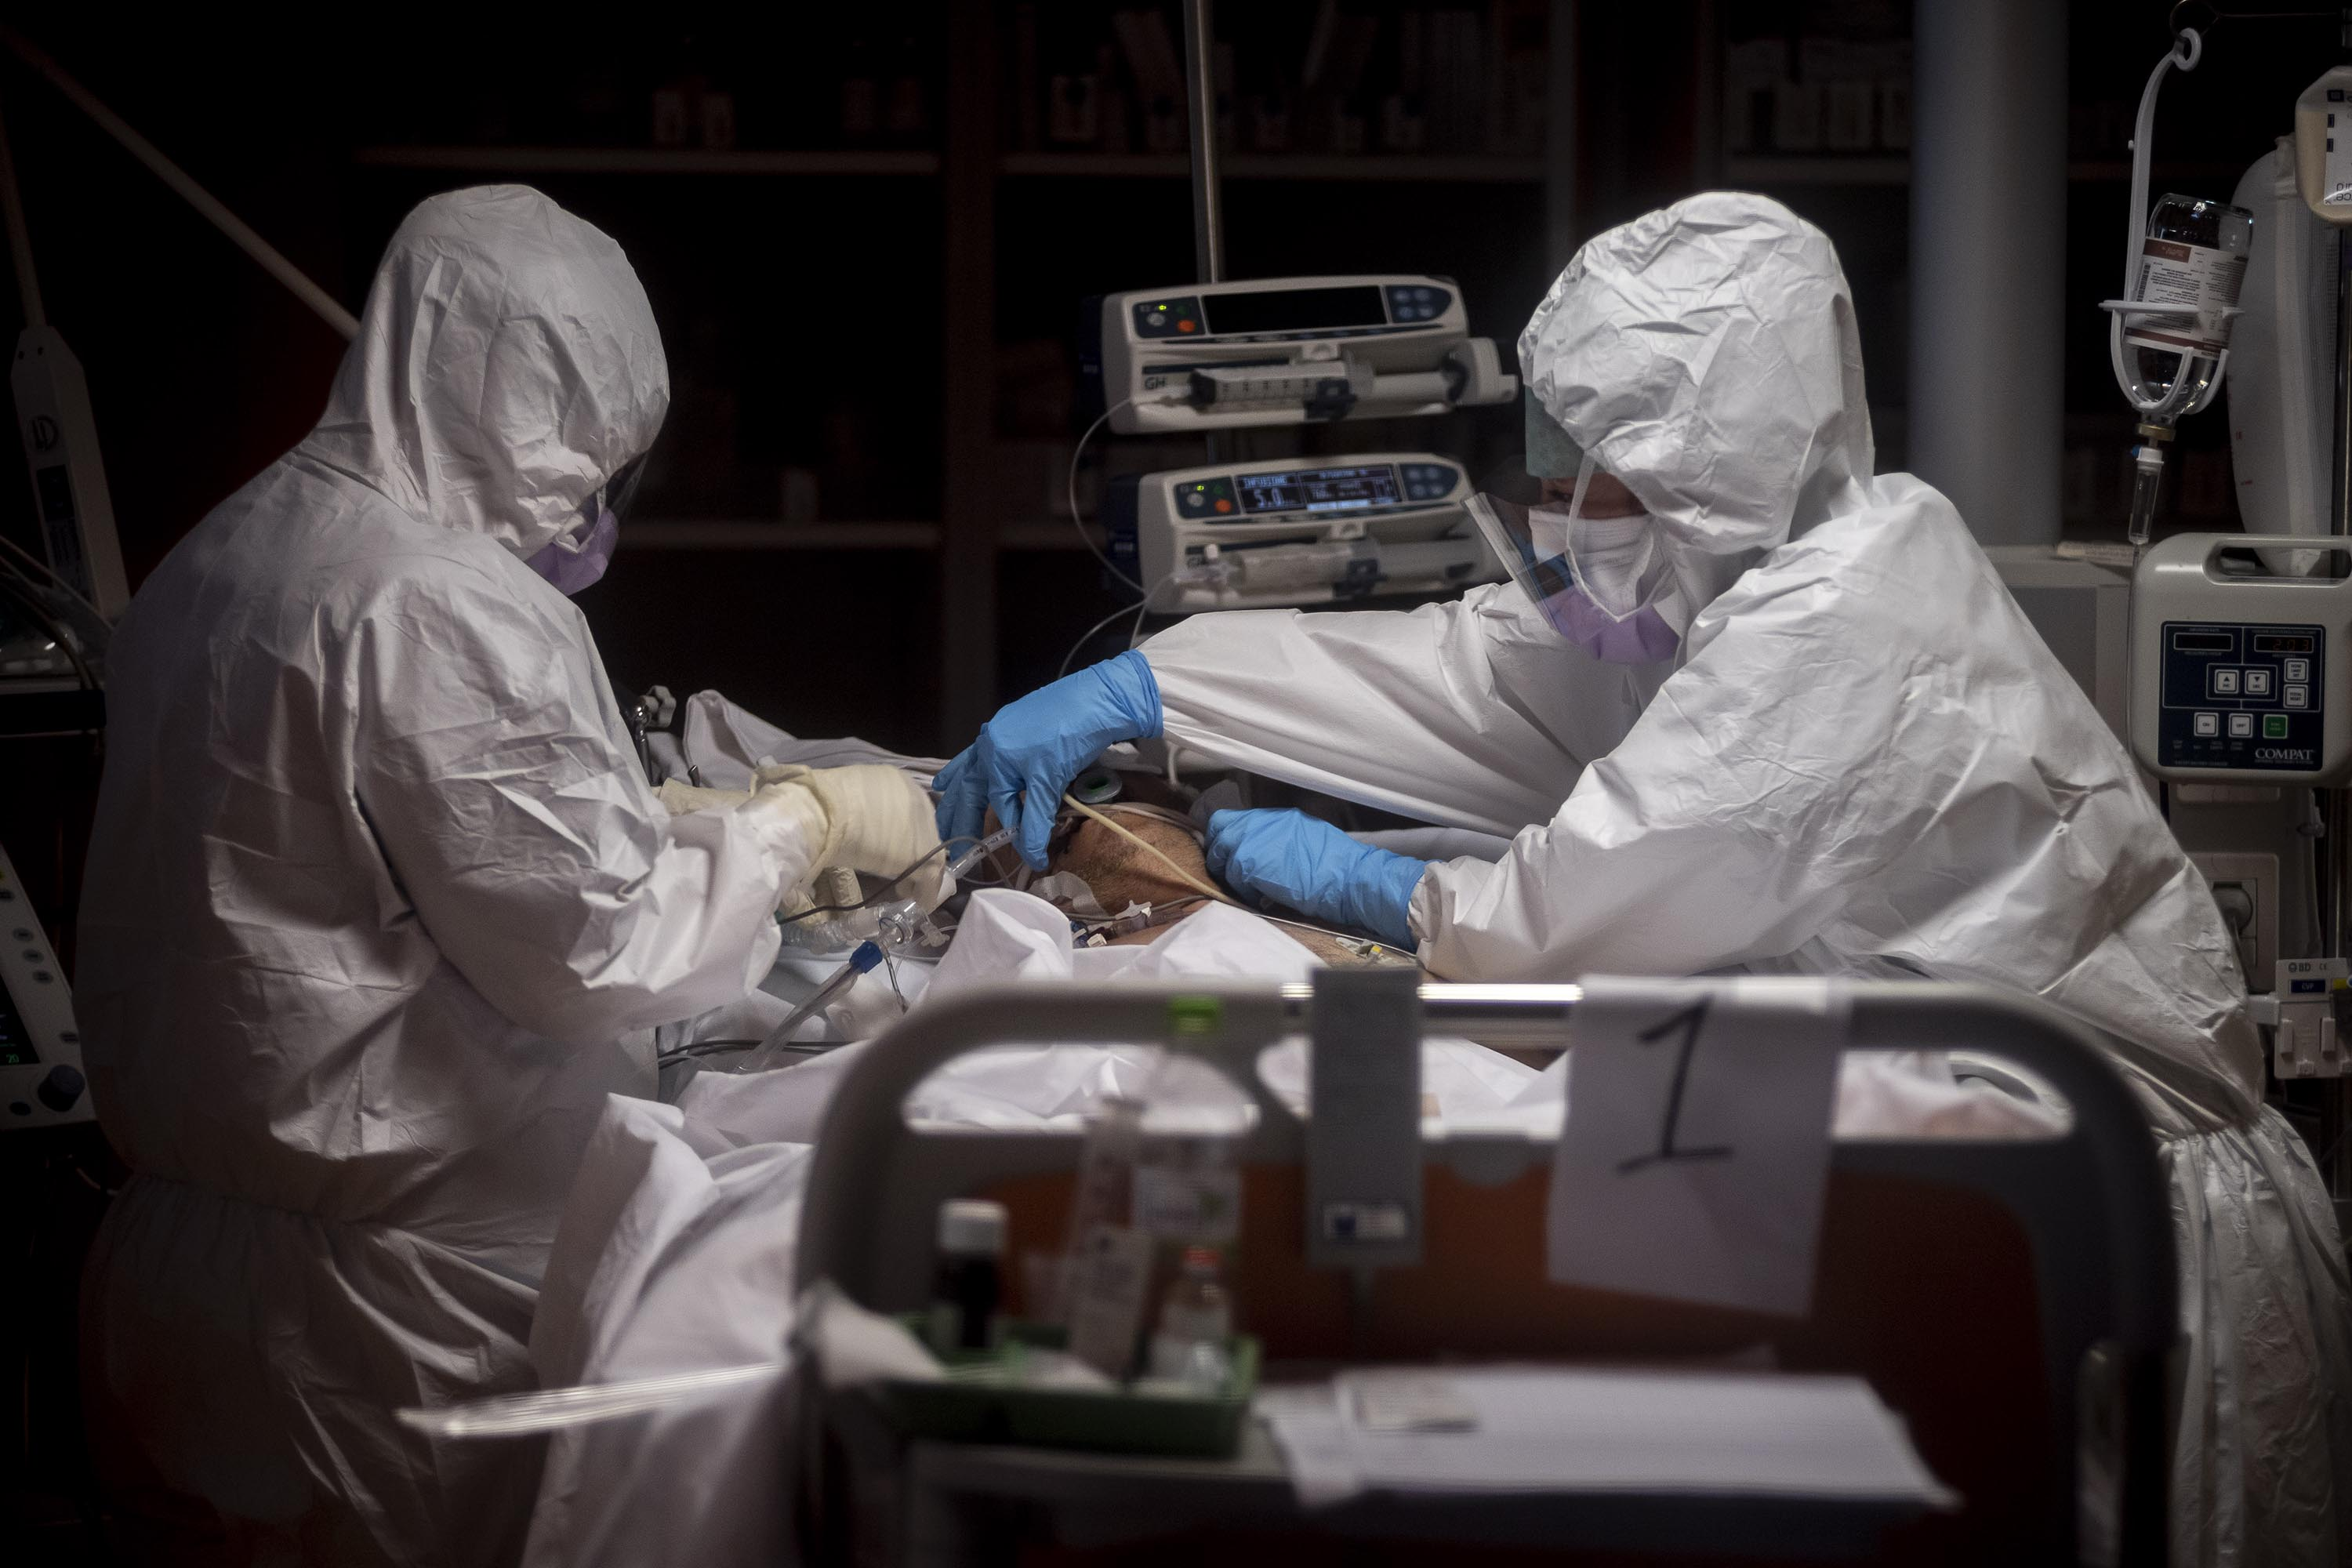 Doctors treat a coronavirus patient at a hospital in Rome, Italy, on March 26.